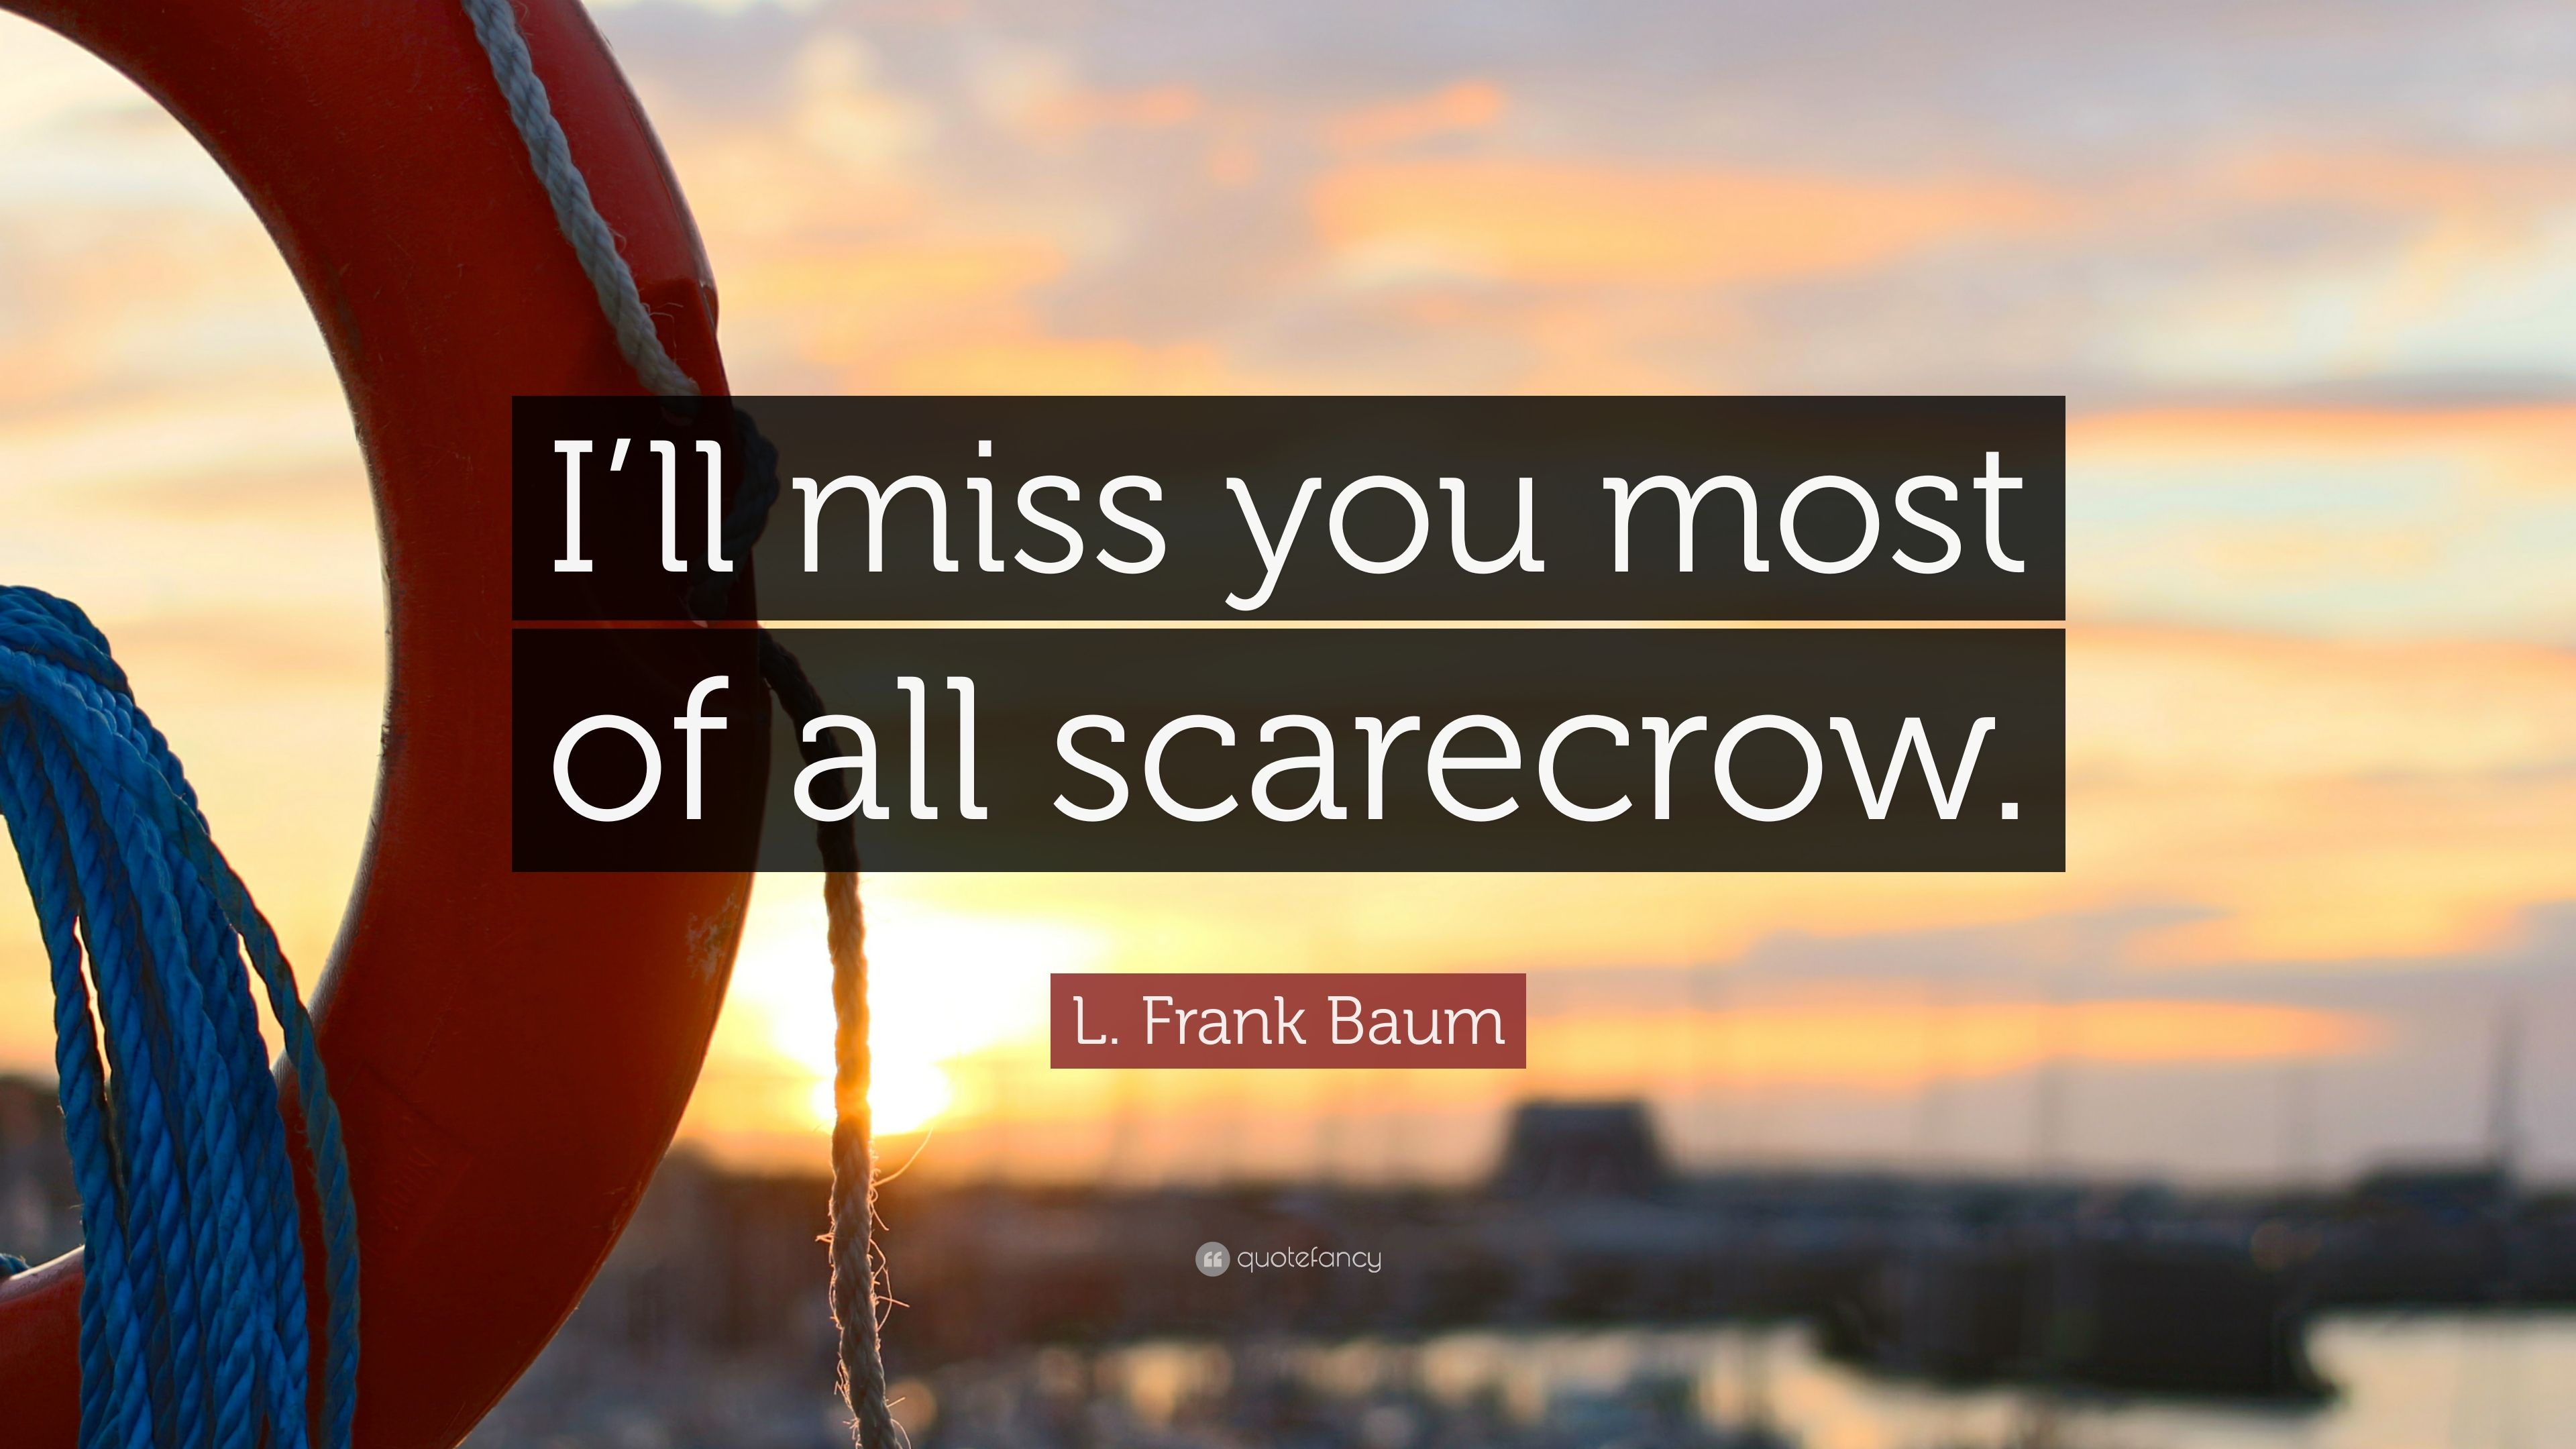 L Frank Baum Quote Ill Miss You Most Of All Scarecrow 7